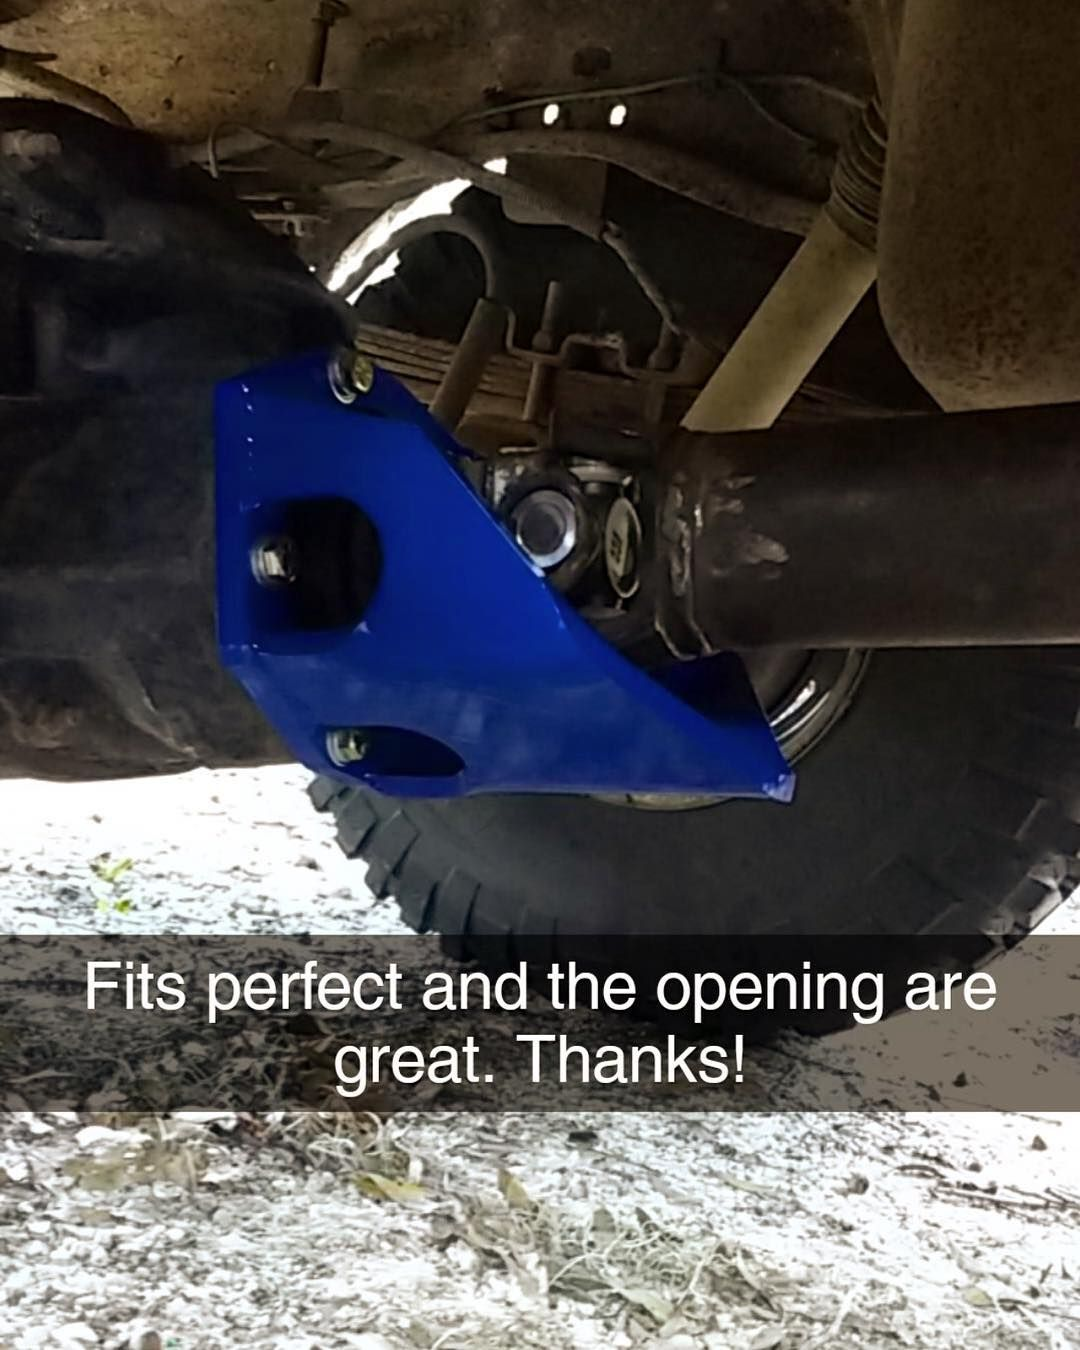 That blue RuffStuff Pinion Guard tho!!!! You can get this